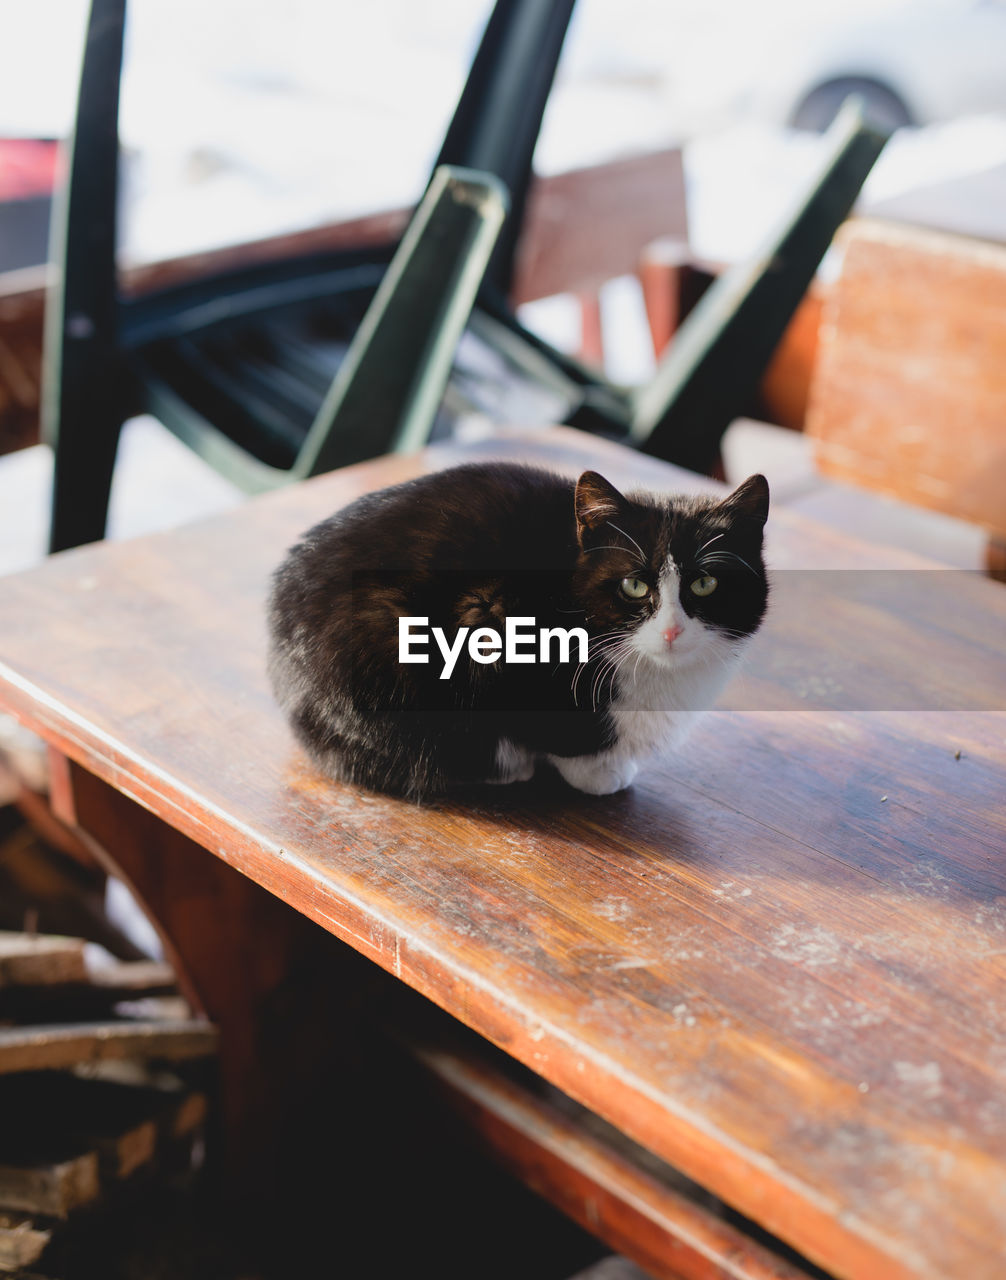 cat, domestic cat, feline, animal themes, animal, domestic, domestic animals, mammal, pets, one animal, vertebrate, relaxation, wood - material, no people, table, sitting, seat, indoors, portrait, selective focus, whisker, animal eye